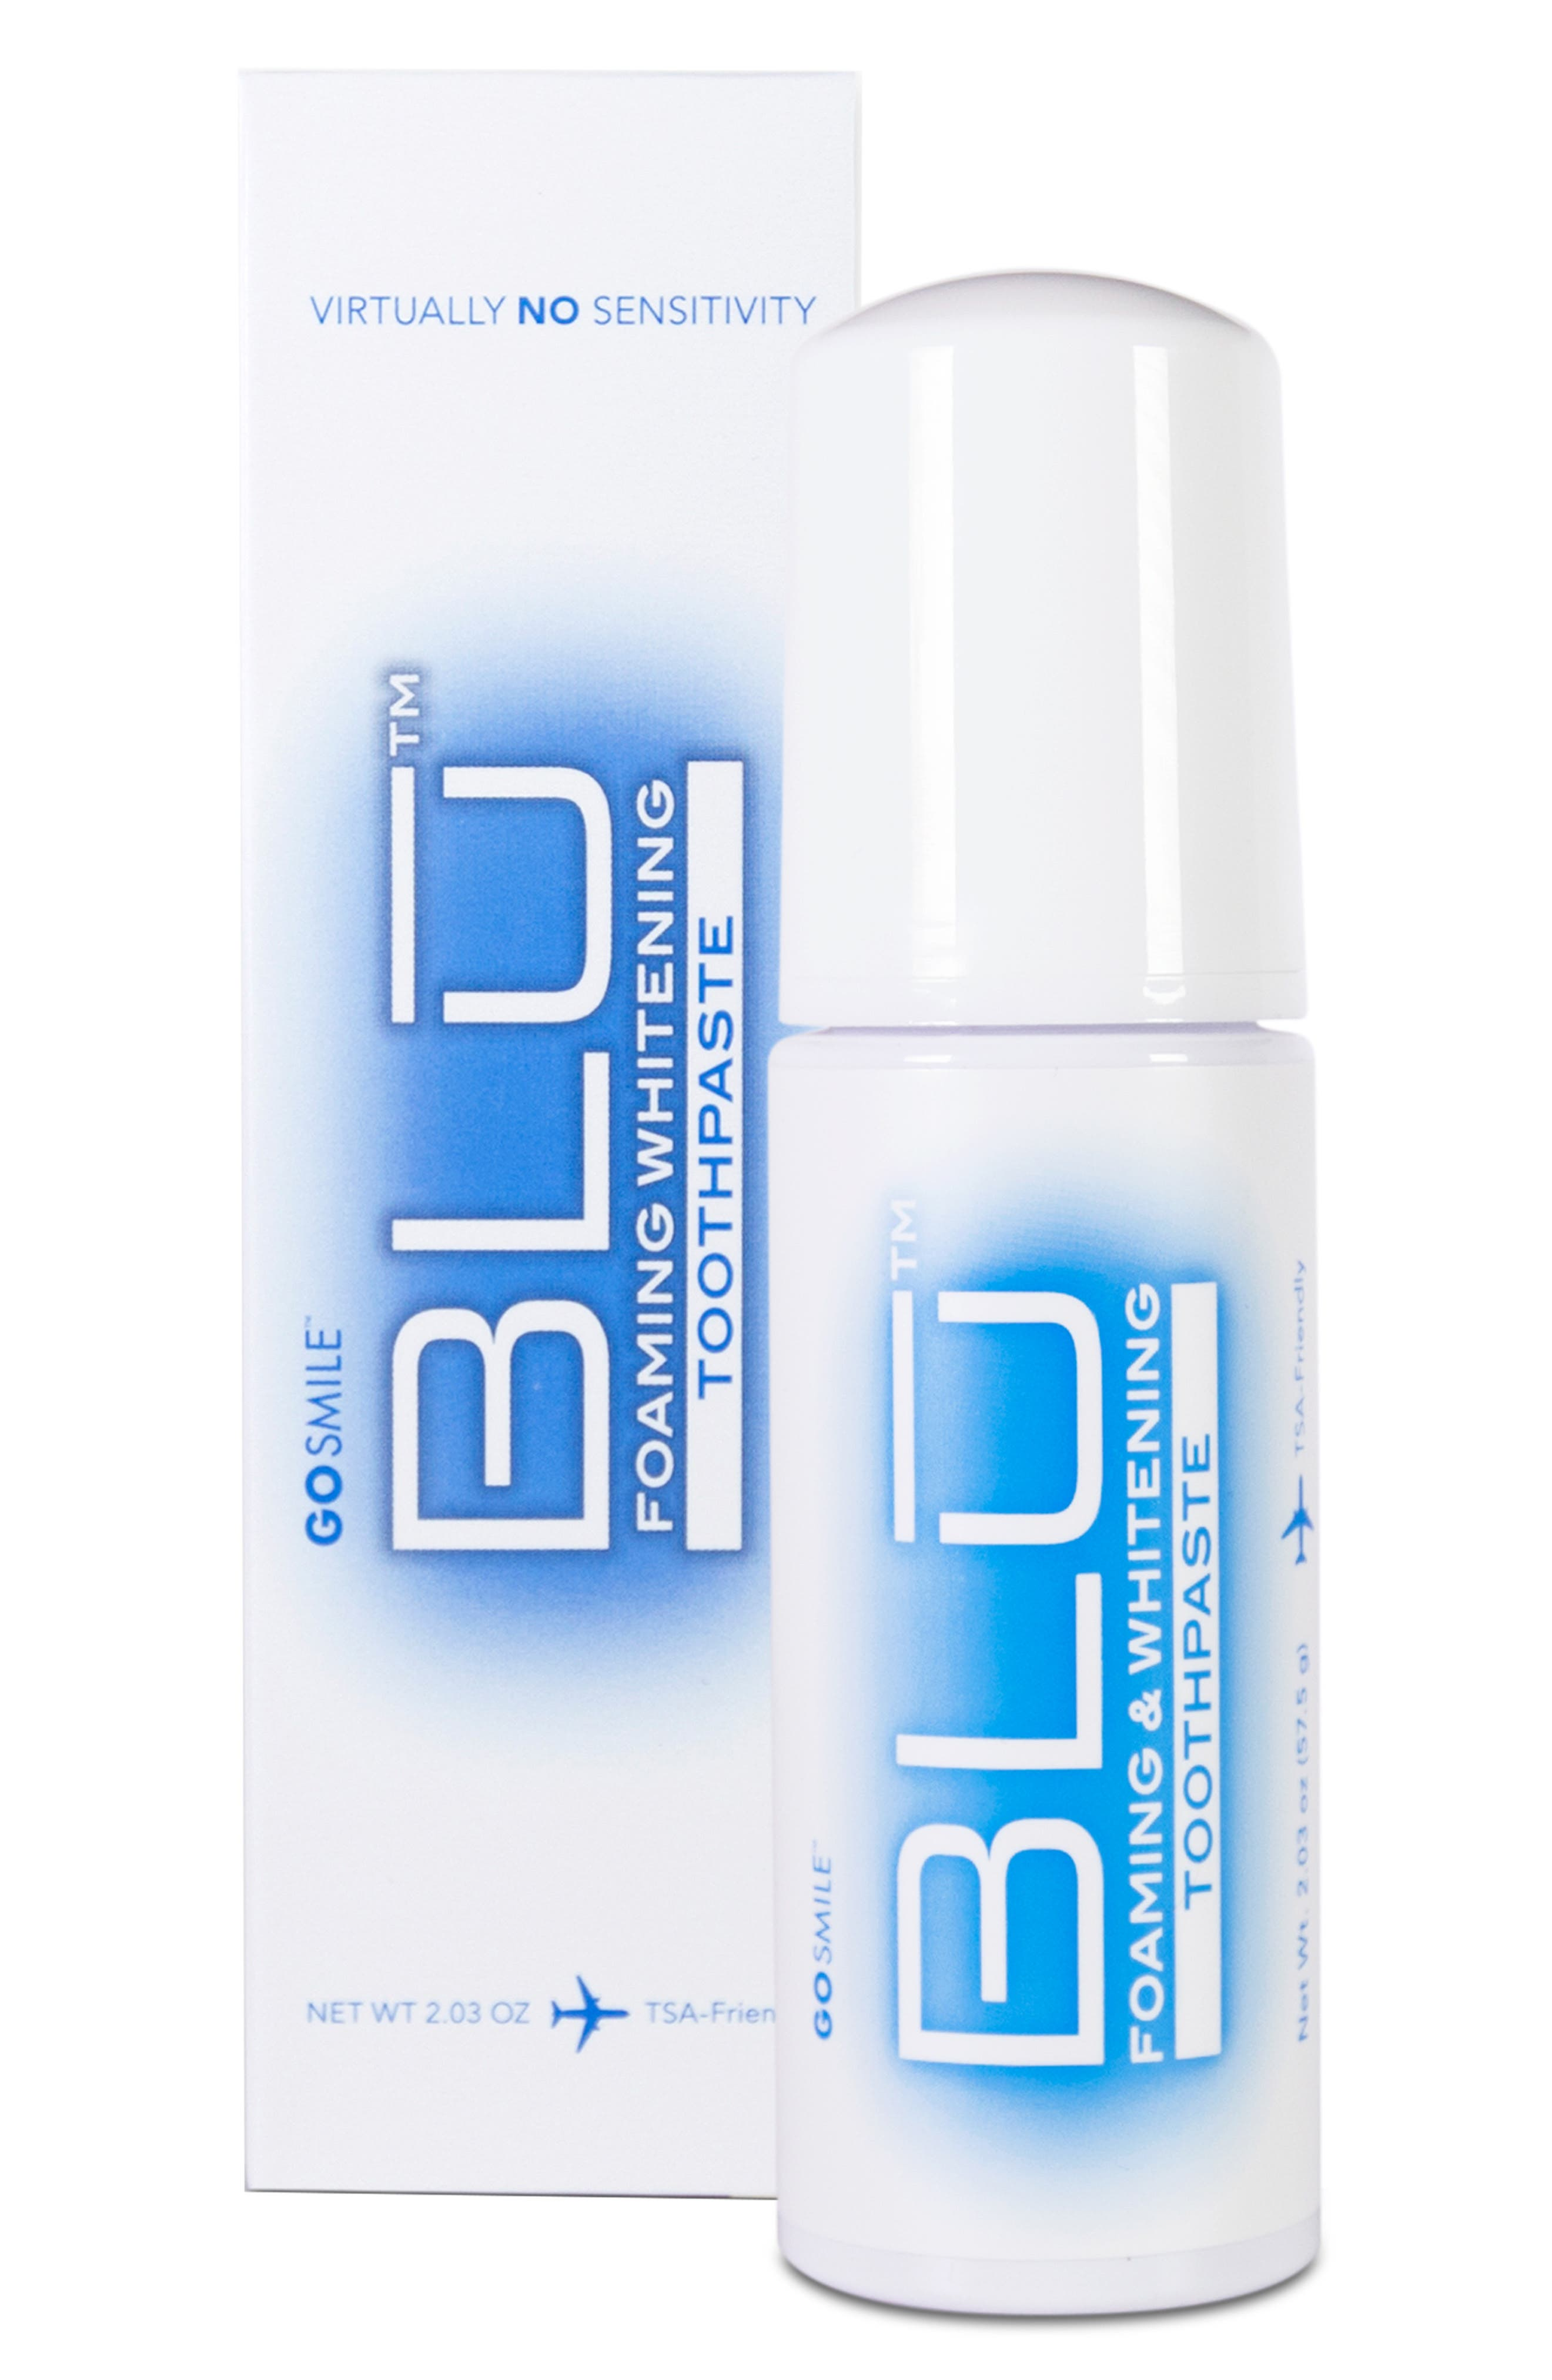 GO SMiLE(R) BLU Foaming & Whitening Toothpaste at Nordstrom